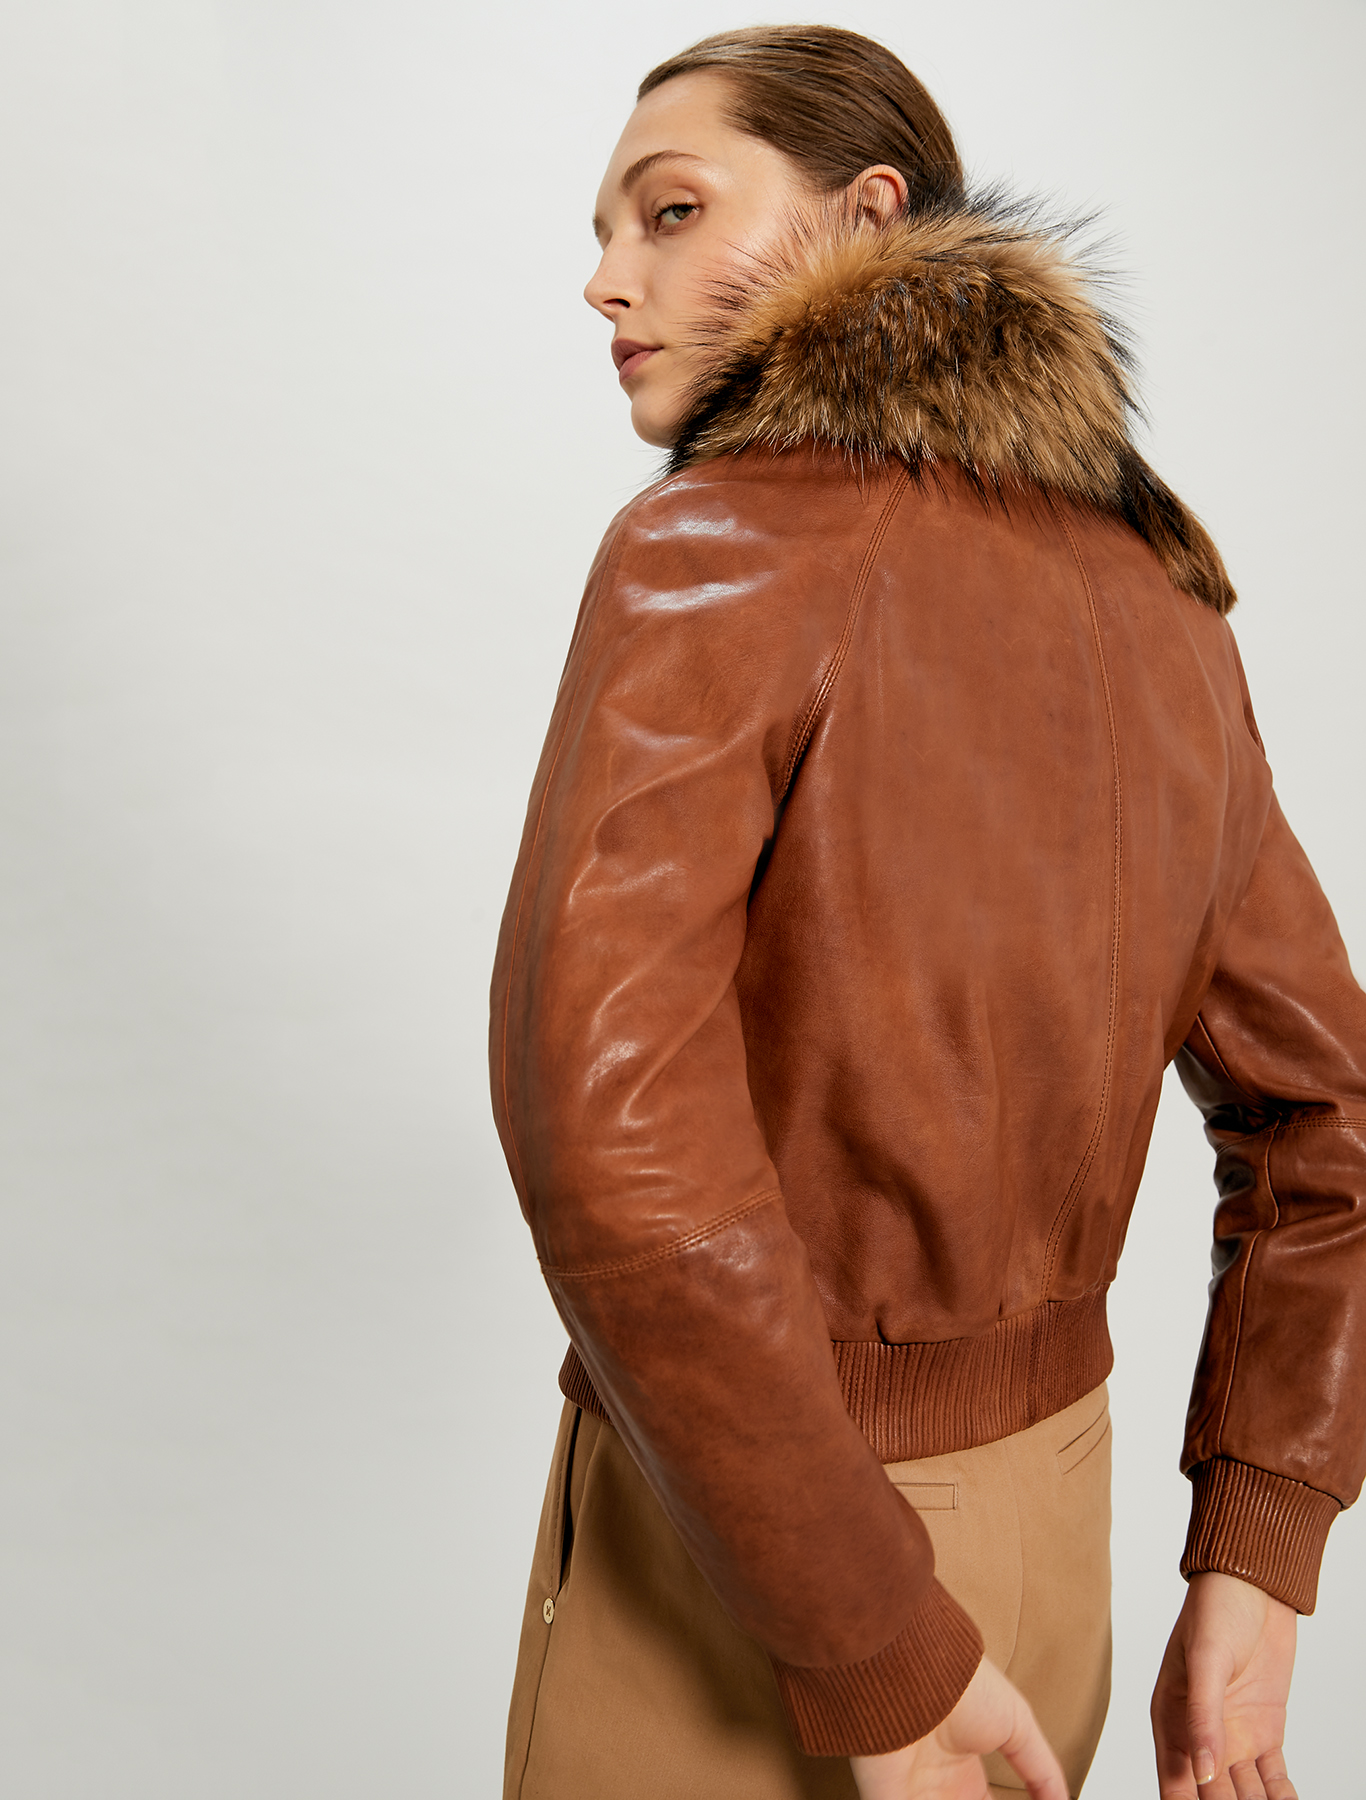 Nappa leather and fur bomber jacket - brown - pennyblack